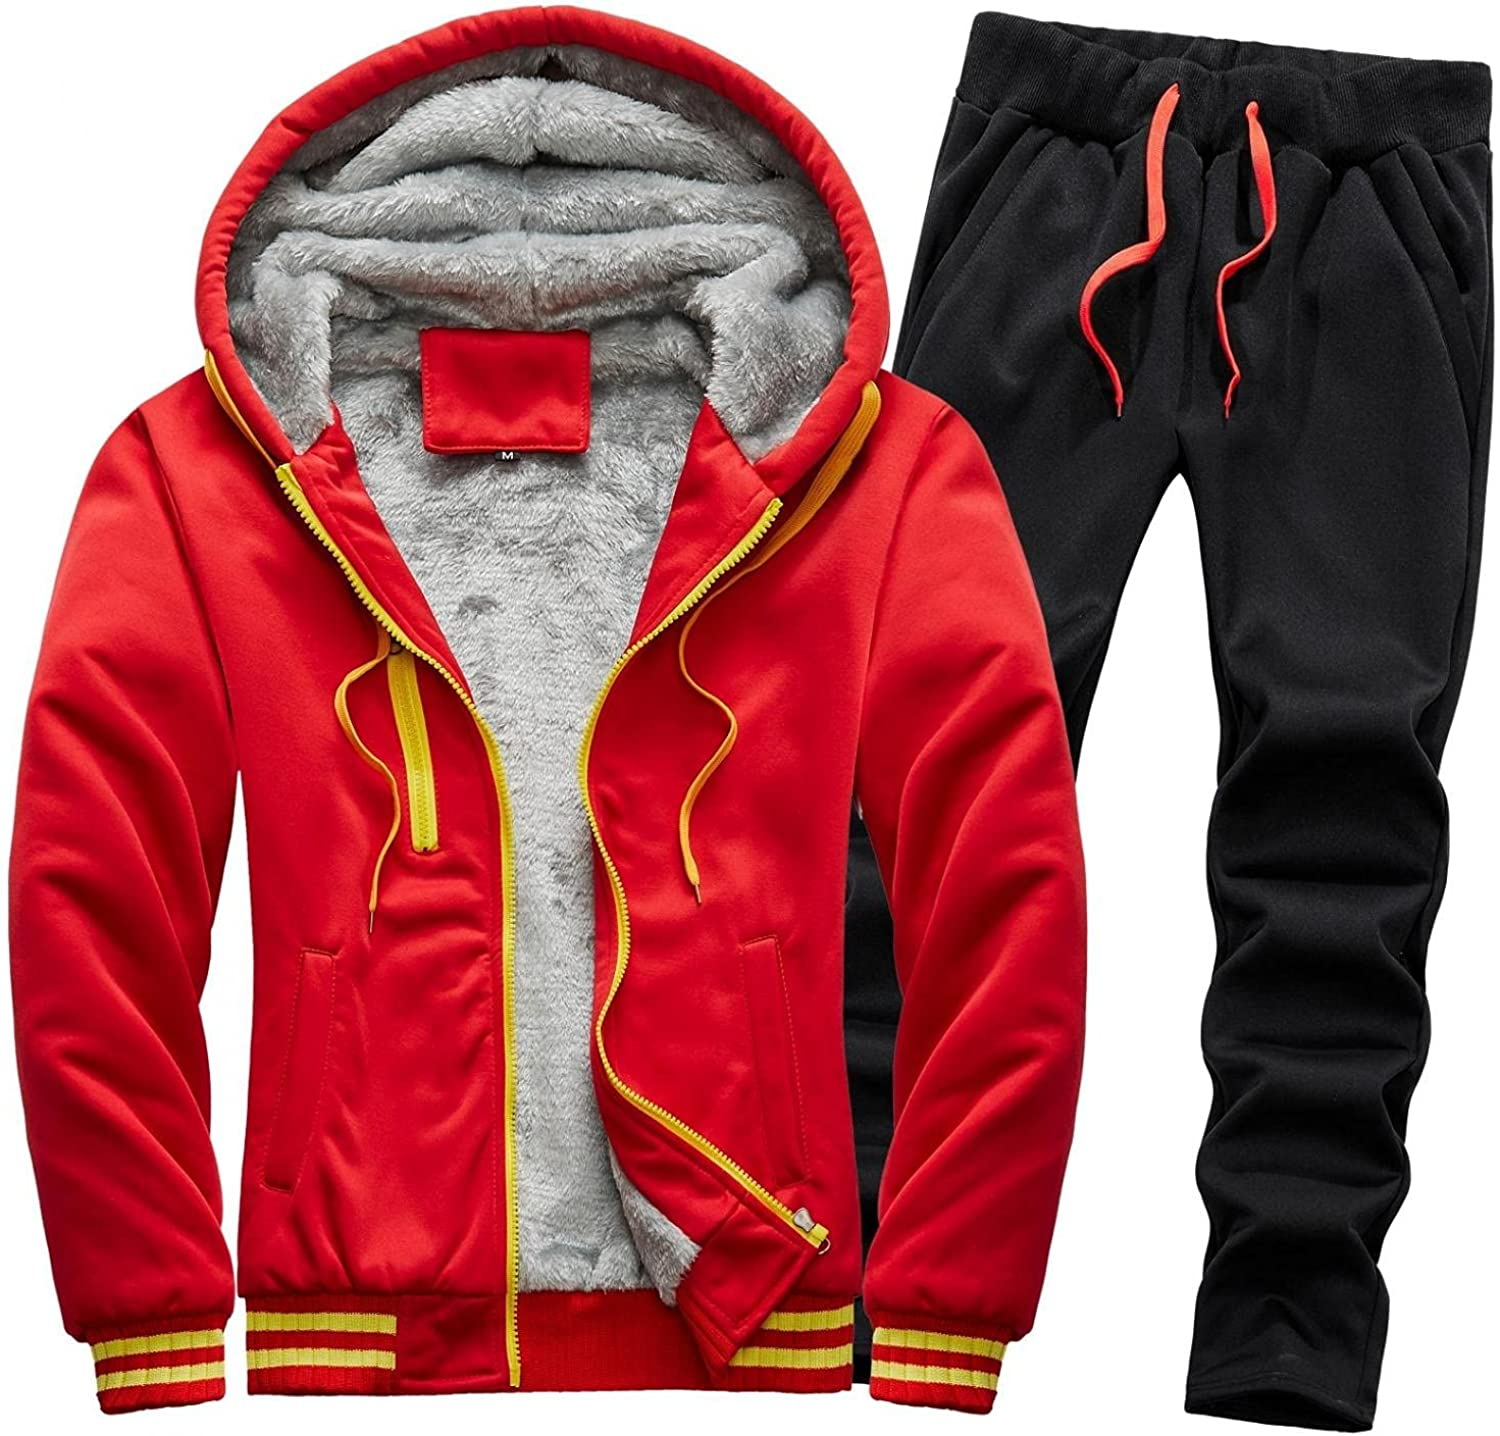 LEIYAN Mens 2 Pieces Outfit Set Casual Long Sleeve Zip Up Sherpa Lined Hooded Jackets Sweatpants Jogging Thermal Suits